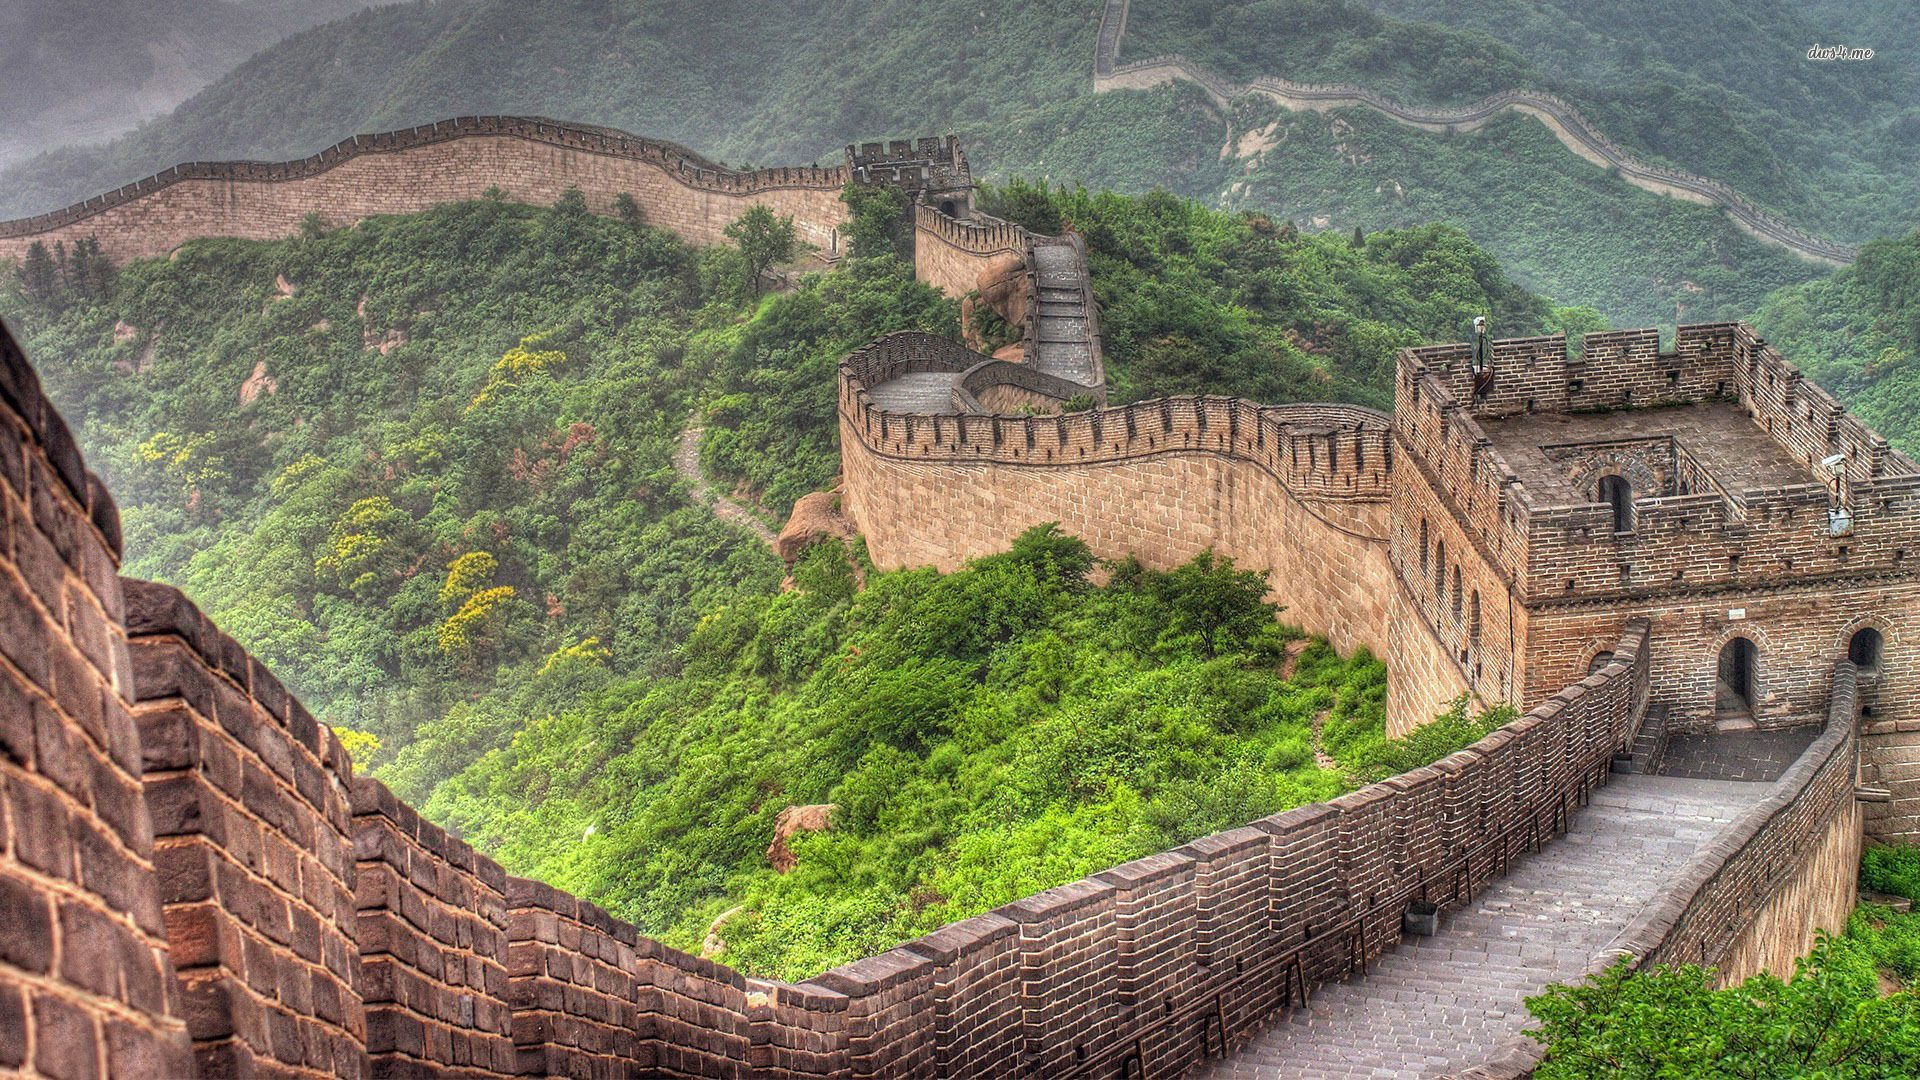 Almost 9000km Wall Www Mustgotravel Com China Wall Asia Great Wall Of China Wonders Of The World Places To See